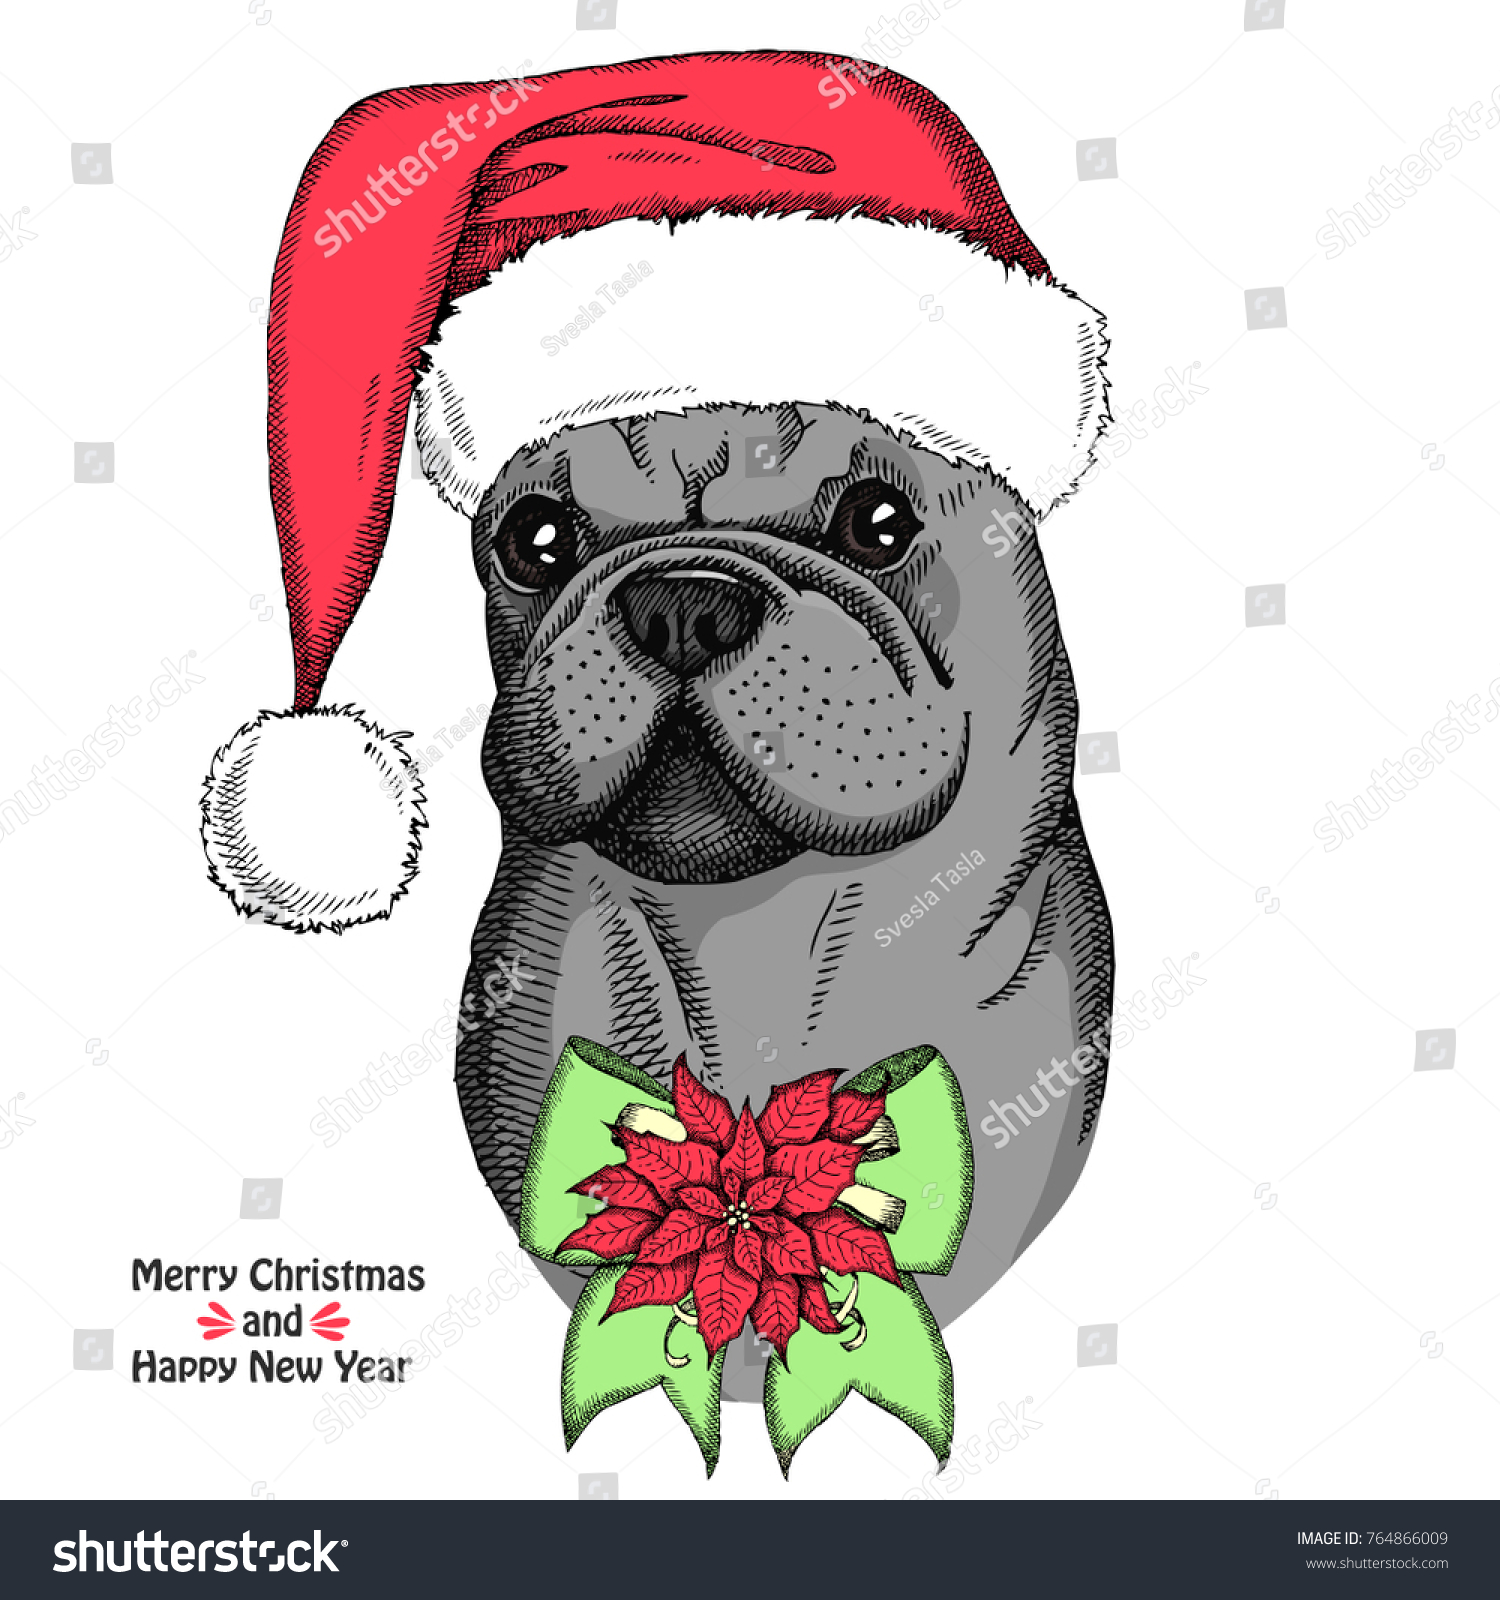 Christmas Card Cute French Bulldog Red Stock Vector (Royalty Free ...